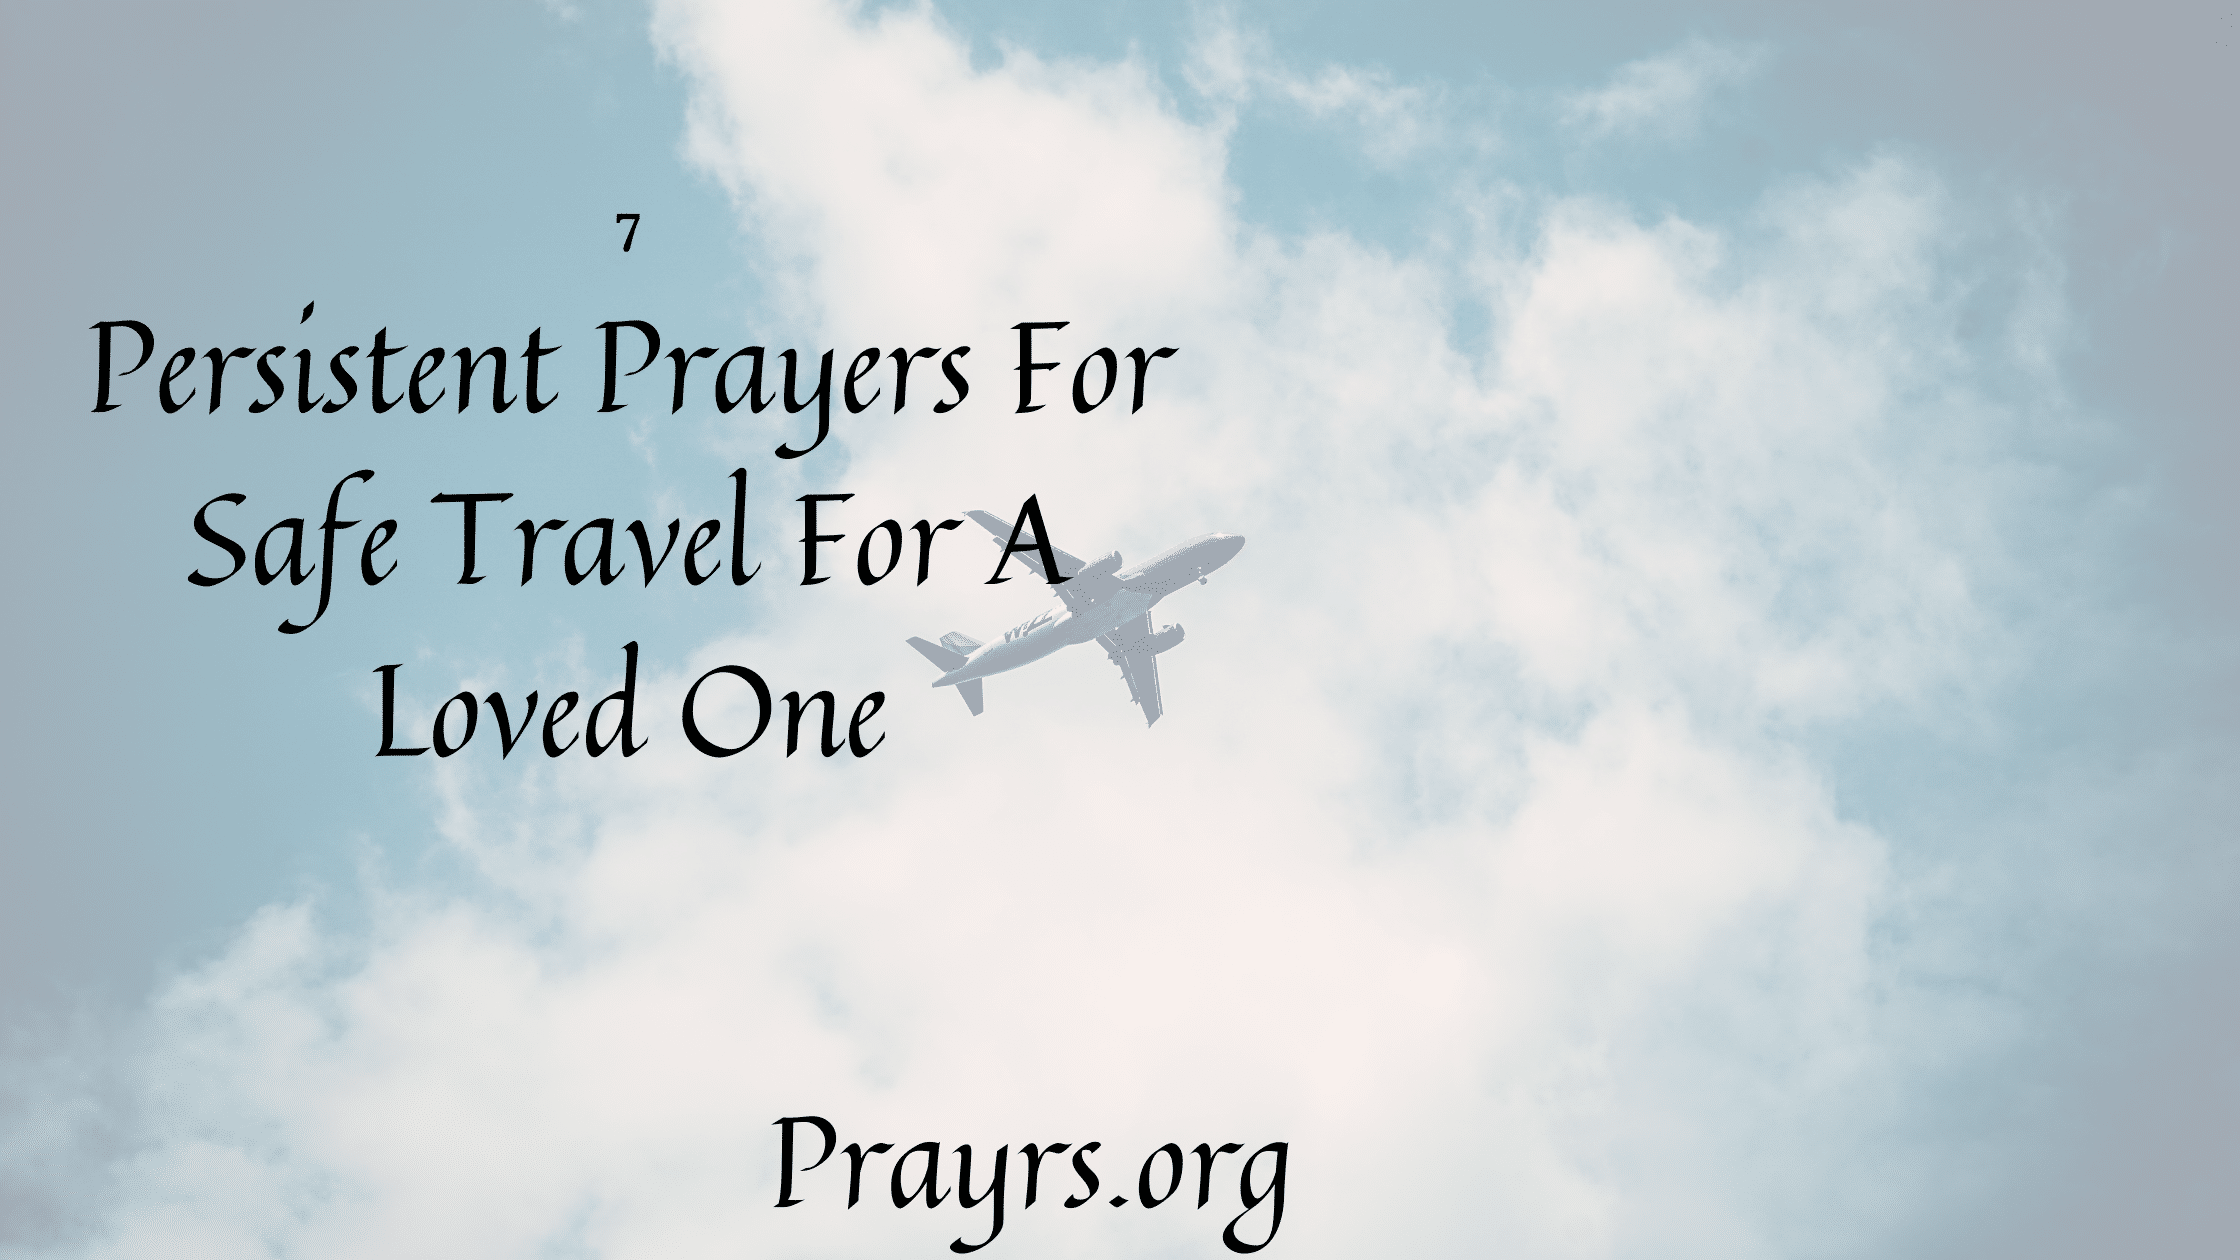 Persistent Prayers For Safe Travel For A Loved One